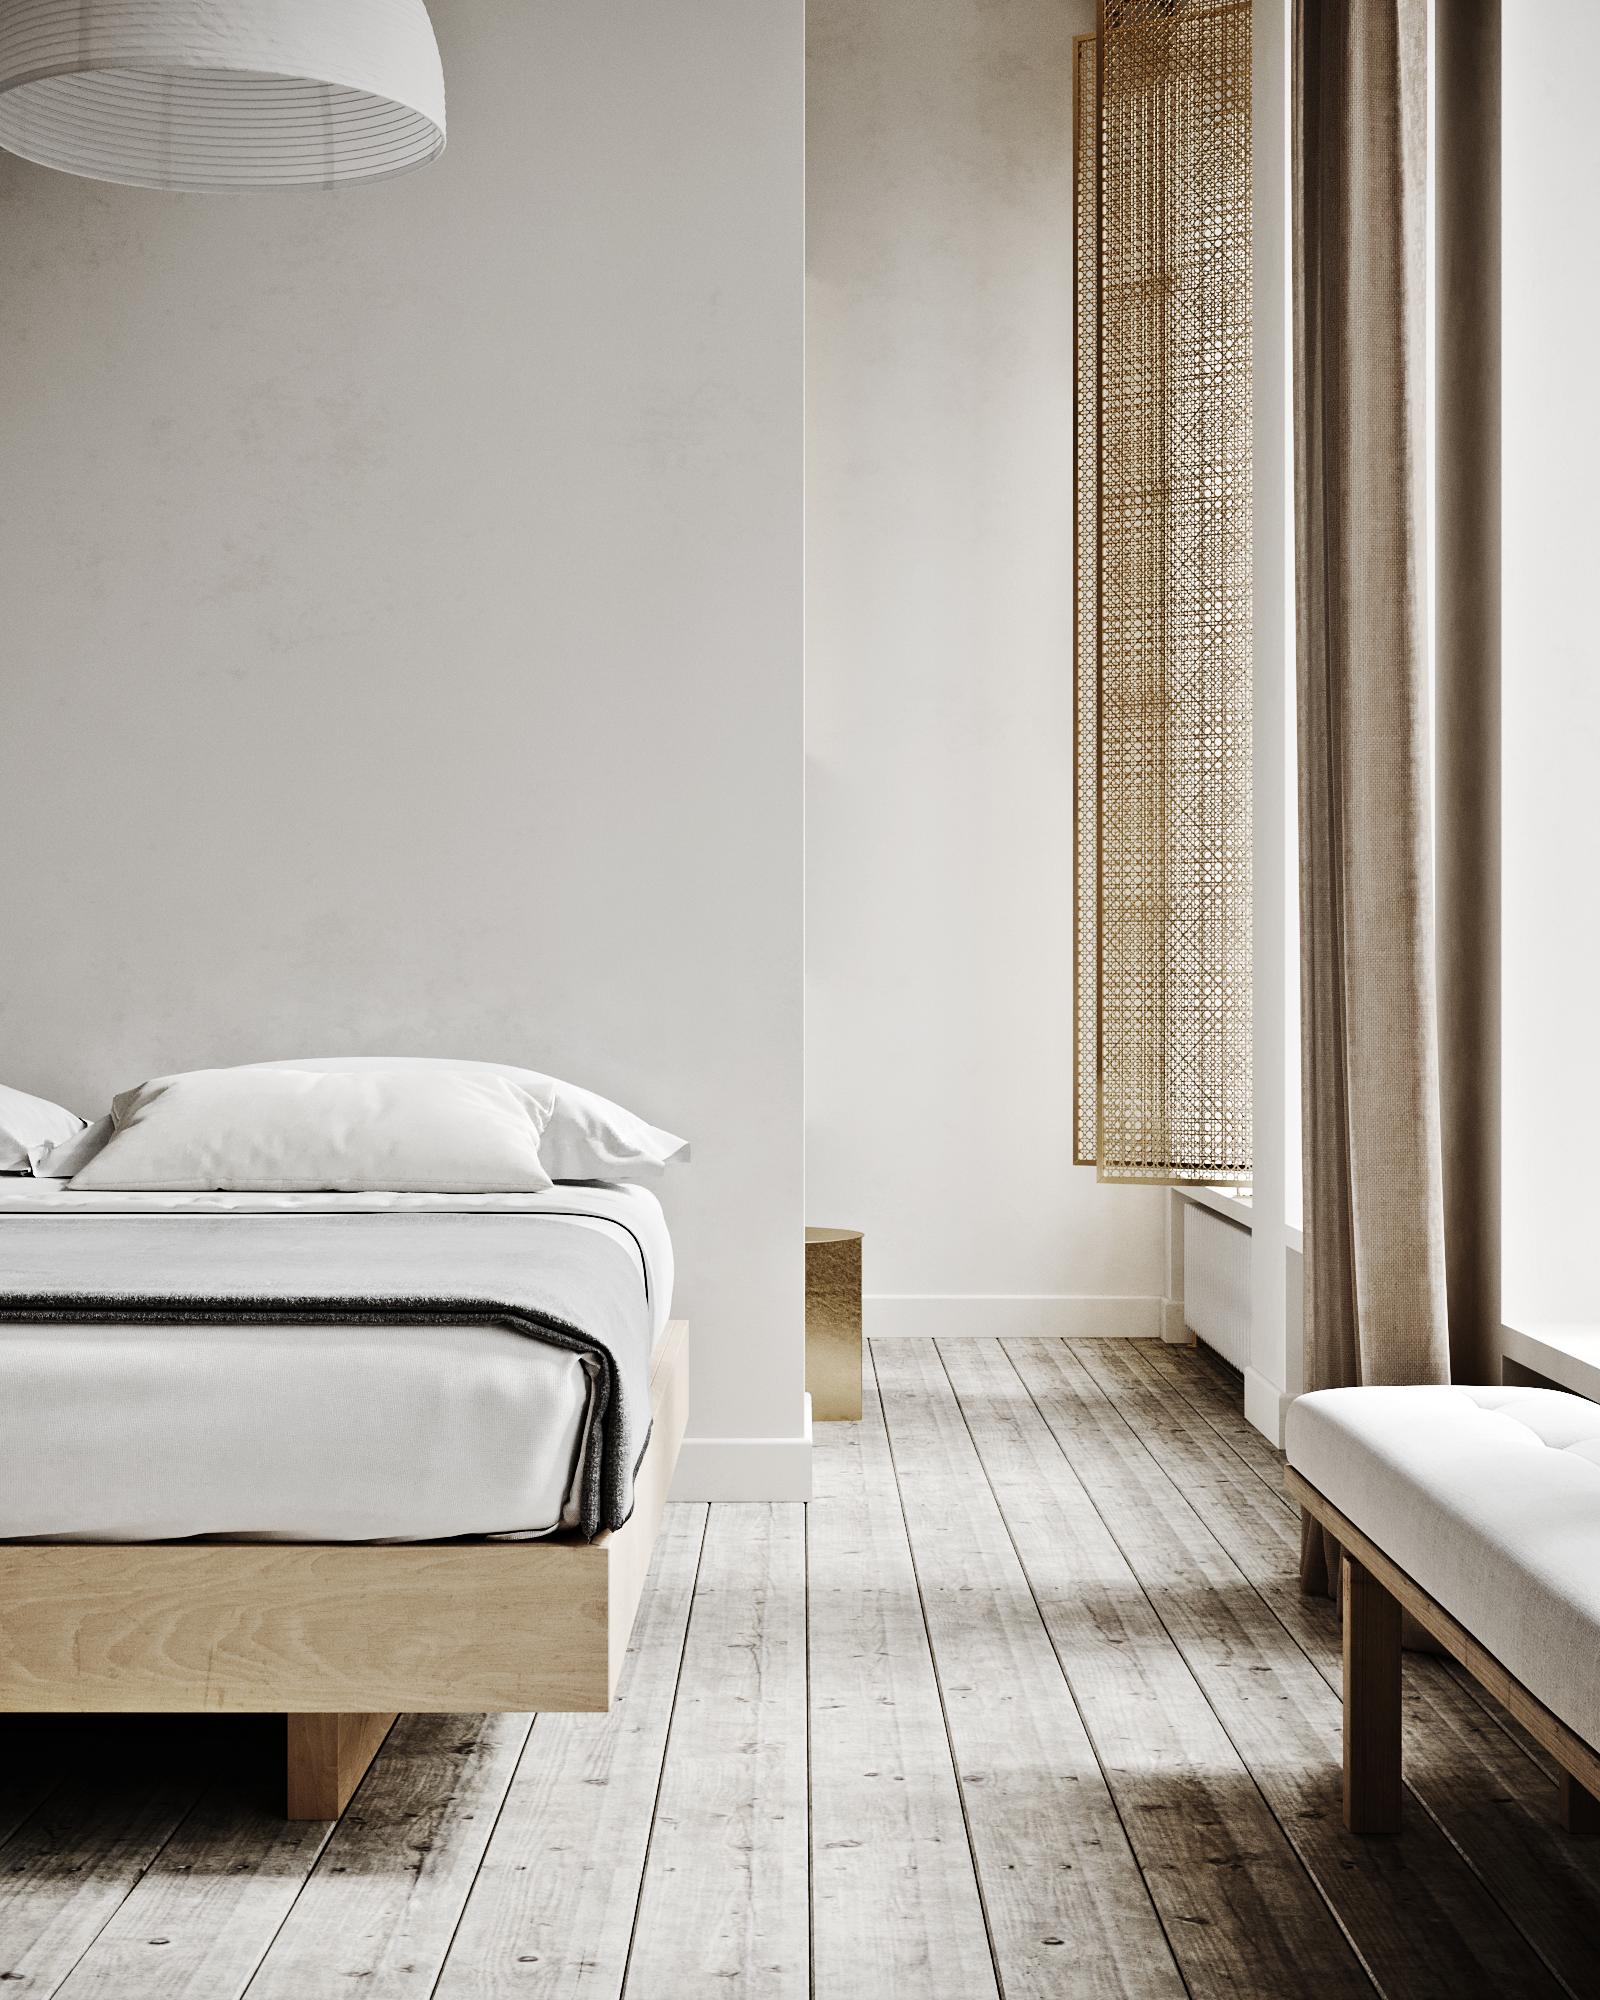 Sense By Dubrovska Studio A Minimalist Style Bedroom With An Incredible Integrated Bathroom Minimalism Interior Minimalist Interior Design Minimalist Interior